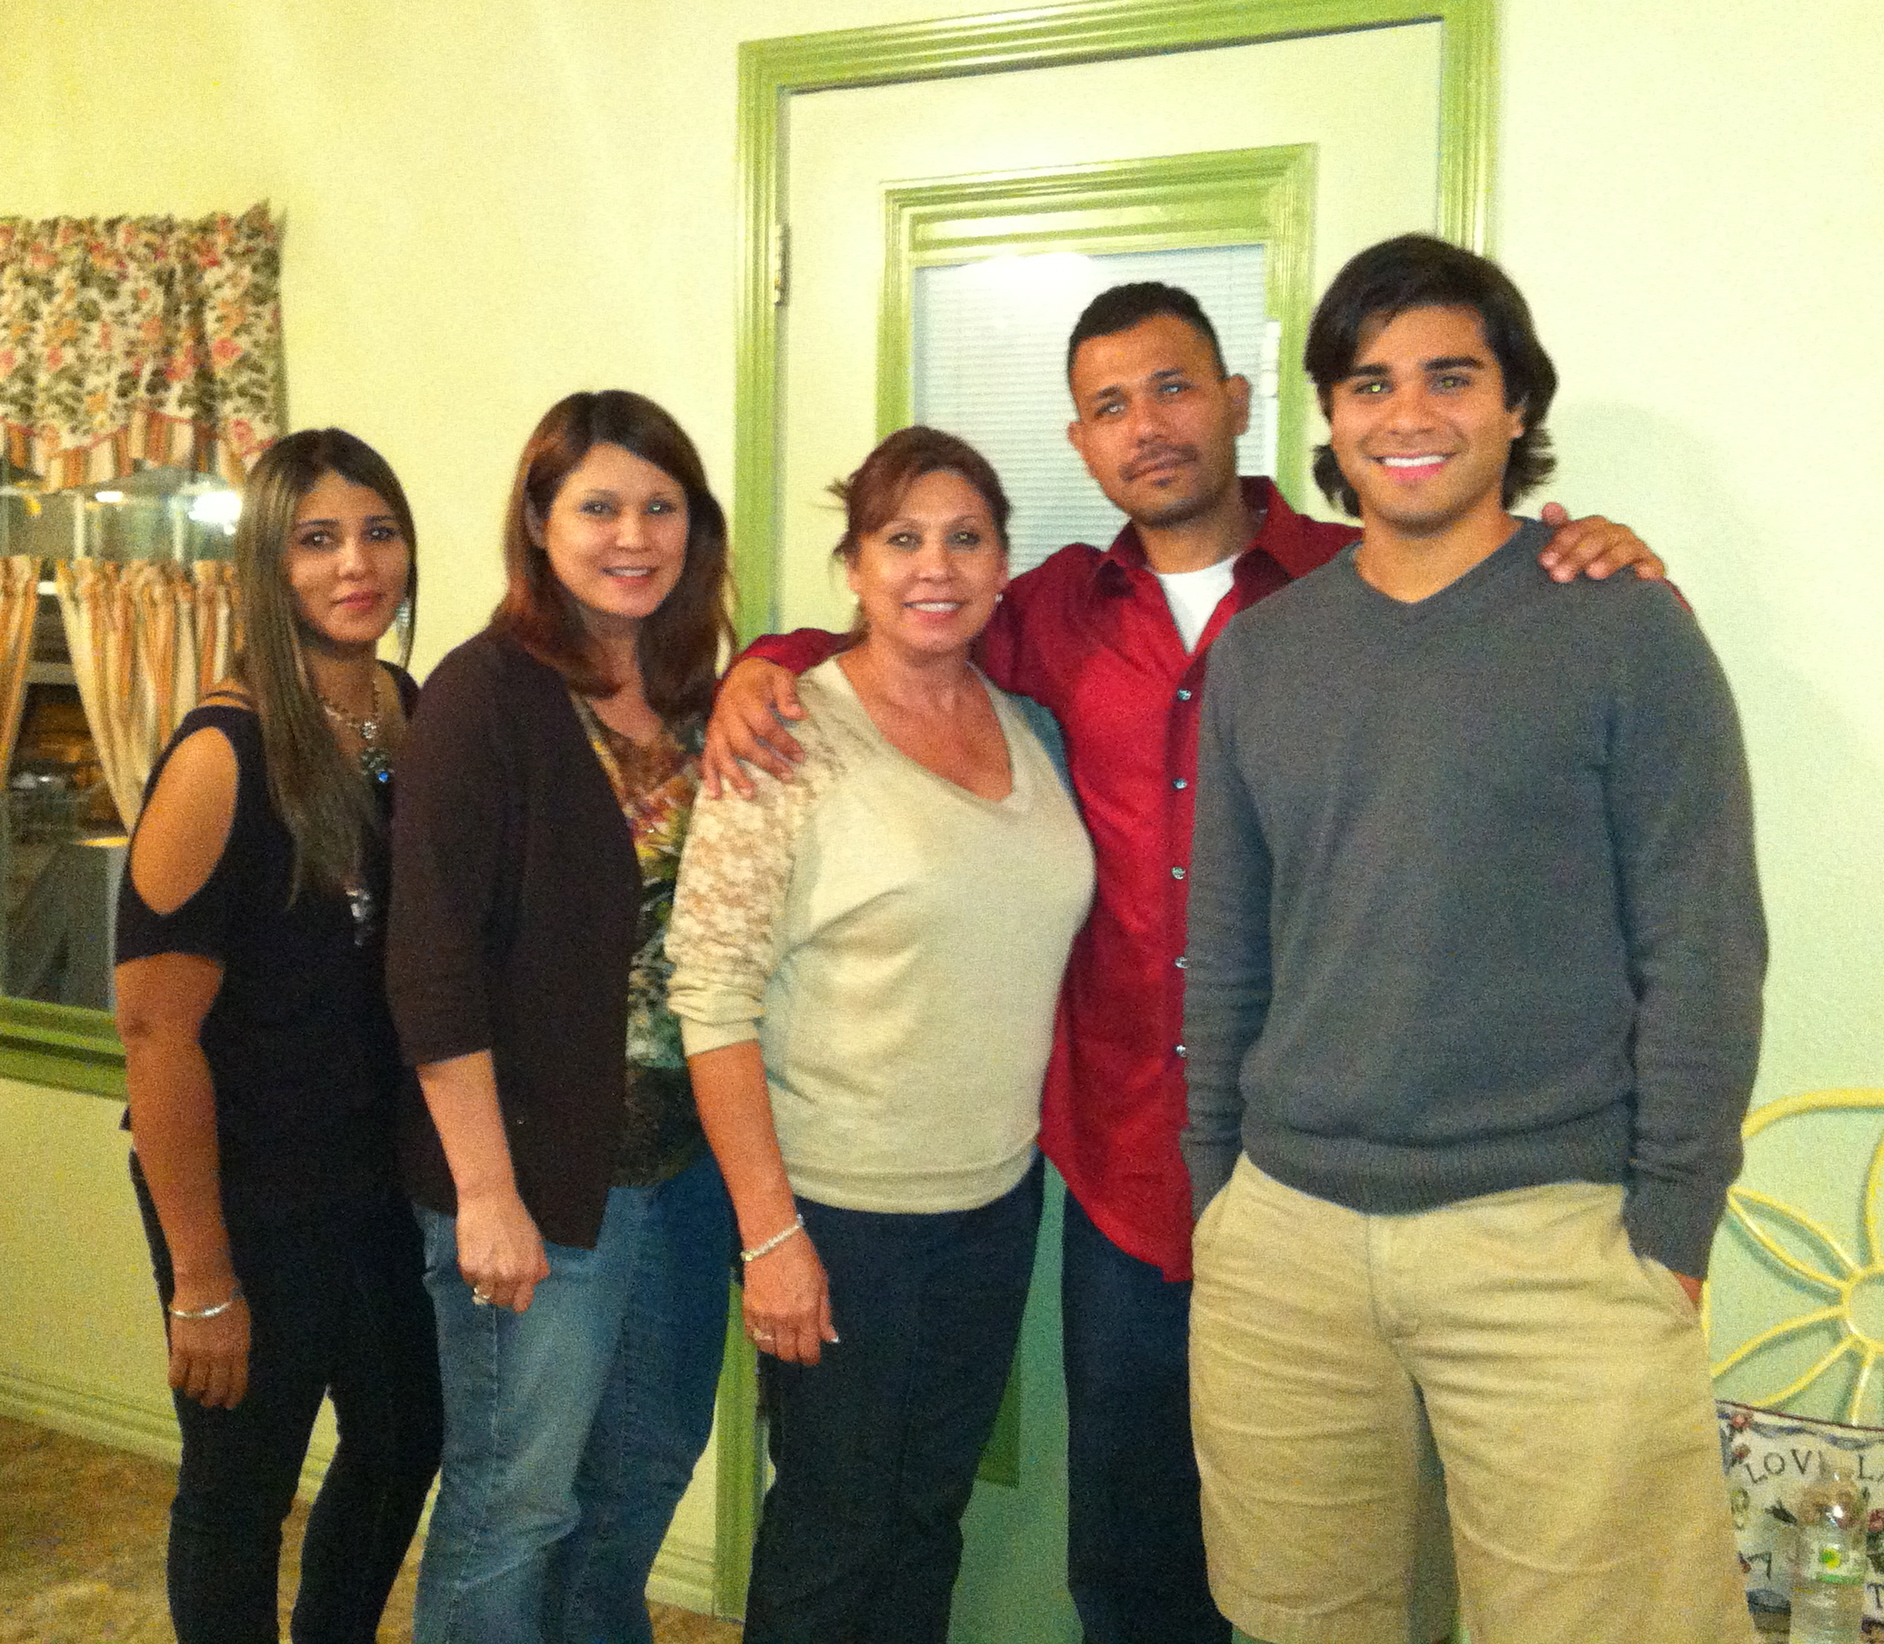 The Solis Family: my mom, my sisters Anita, Norma, and my brother Gilbert.